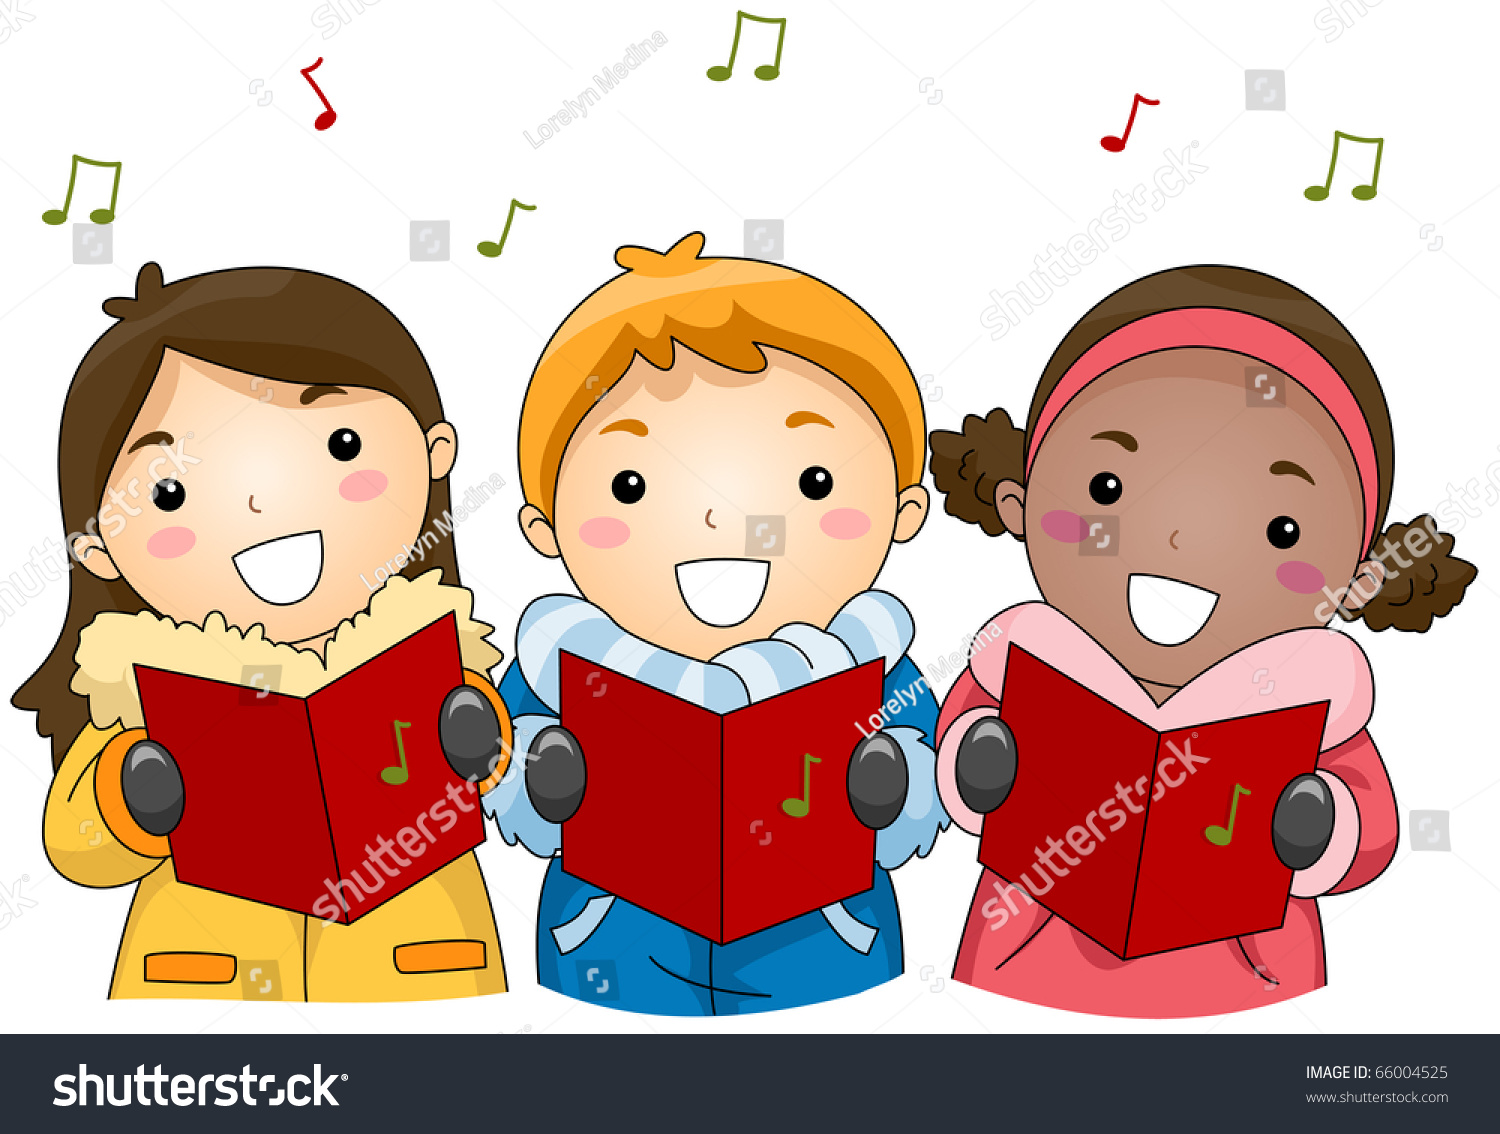 Illustration Kids Singing Christmas Carols Stock Vector (Royalty ...